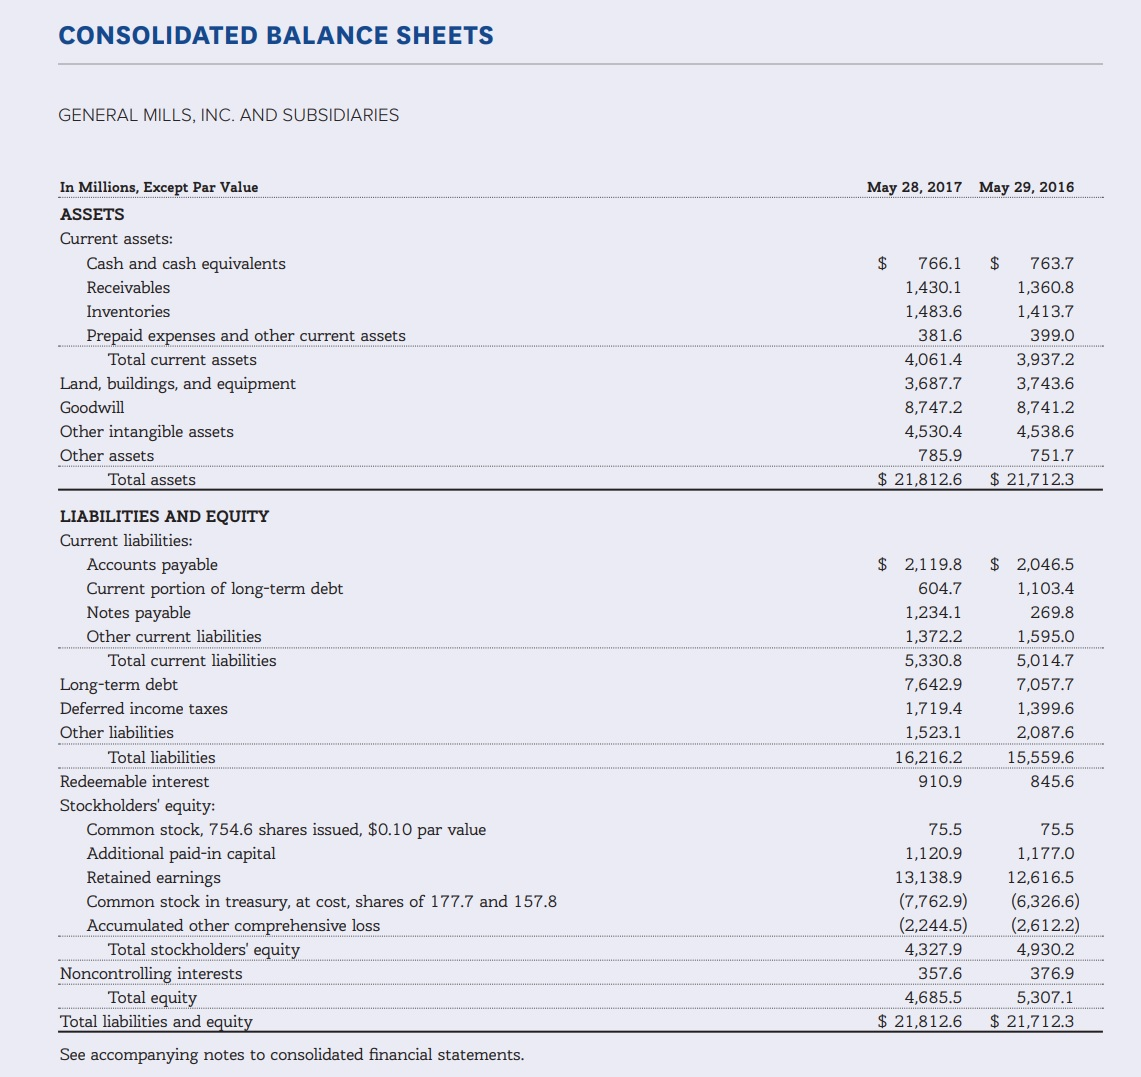 CONSOLIDATED BALANCE SHEETS GENERAL MILLS, INC. AND SUBSIDIARIES In Millions, Except Par Value May 29, 2016 May 28, 2017 ASSETS Current assets: Cash and cash equivalents $ 763.7 1,360.8 $ 766.1 Receivables 1,430.1 Inventories 1,483.6 1,413.7 Prepaid expenses and other current assets 381.6 399.0 Total current assets 4,061.4 3,937.2 Land, buildings, and equipment 3,687.7 3,743.6 8,741.2 Goodwill 8,747.2 Other intangible assets 4,530.4 4,538.6 Other assets 785.9 751.7 Total assets $ 21,812.6 $ 21,712.3 LIABILITIES AND EQUITY Current liabilities: Accounts payable $ 2,119.8 2,046.5 Current portion of long-term debt Notes payable 604.7 1,103.4 1,234.1 269.8 Other current liabilities 1,372.2 1,595.0 5,014.7 Total current liabilities 5,330.8 Long-term debt 7,642.9 7,057.7 Deferred income taxes 1,719.4 1,399.6 Other liabilities 1,523.1 2,087.6 Total liabilities 16,216.2 15,559.6 Redeemable interest 910.9 845.6 Stockholders' equity: Common stock, 754.6 shares issued, $0.10 par value Additional paid-in capital Retained earnings 75.5 75.5 1,120.9 1,177.0 13,138.9 12,616.5 (7,762.9) (2,244.5) (6,326.6) (2,612.2) Common stock in treasury, at cost, shares of 177.7 and 157.8 Accumulated other comprehensive loss Total stockholders' equity 4,327.9 4,930.2 Noncontrolling interests Total equity Total liabilities and equity 357.6 376.9 5,307.1 4,685.5 $ 21,712.3 $21,812.6 See accompanying notes to consolidated financial statements.